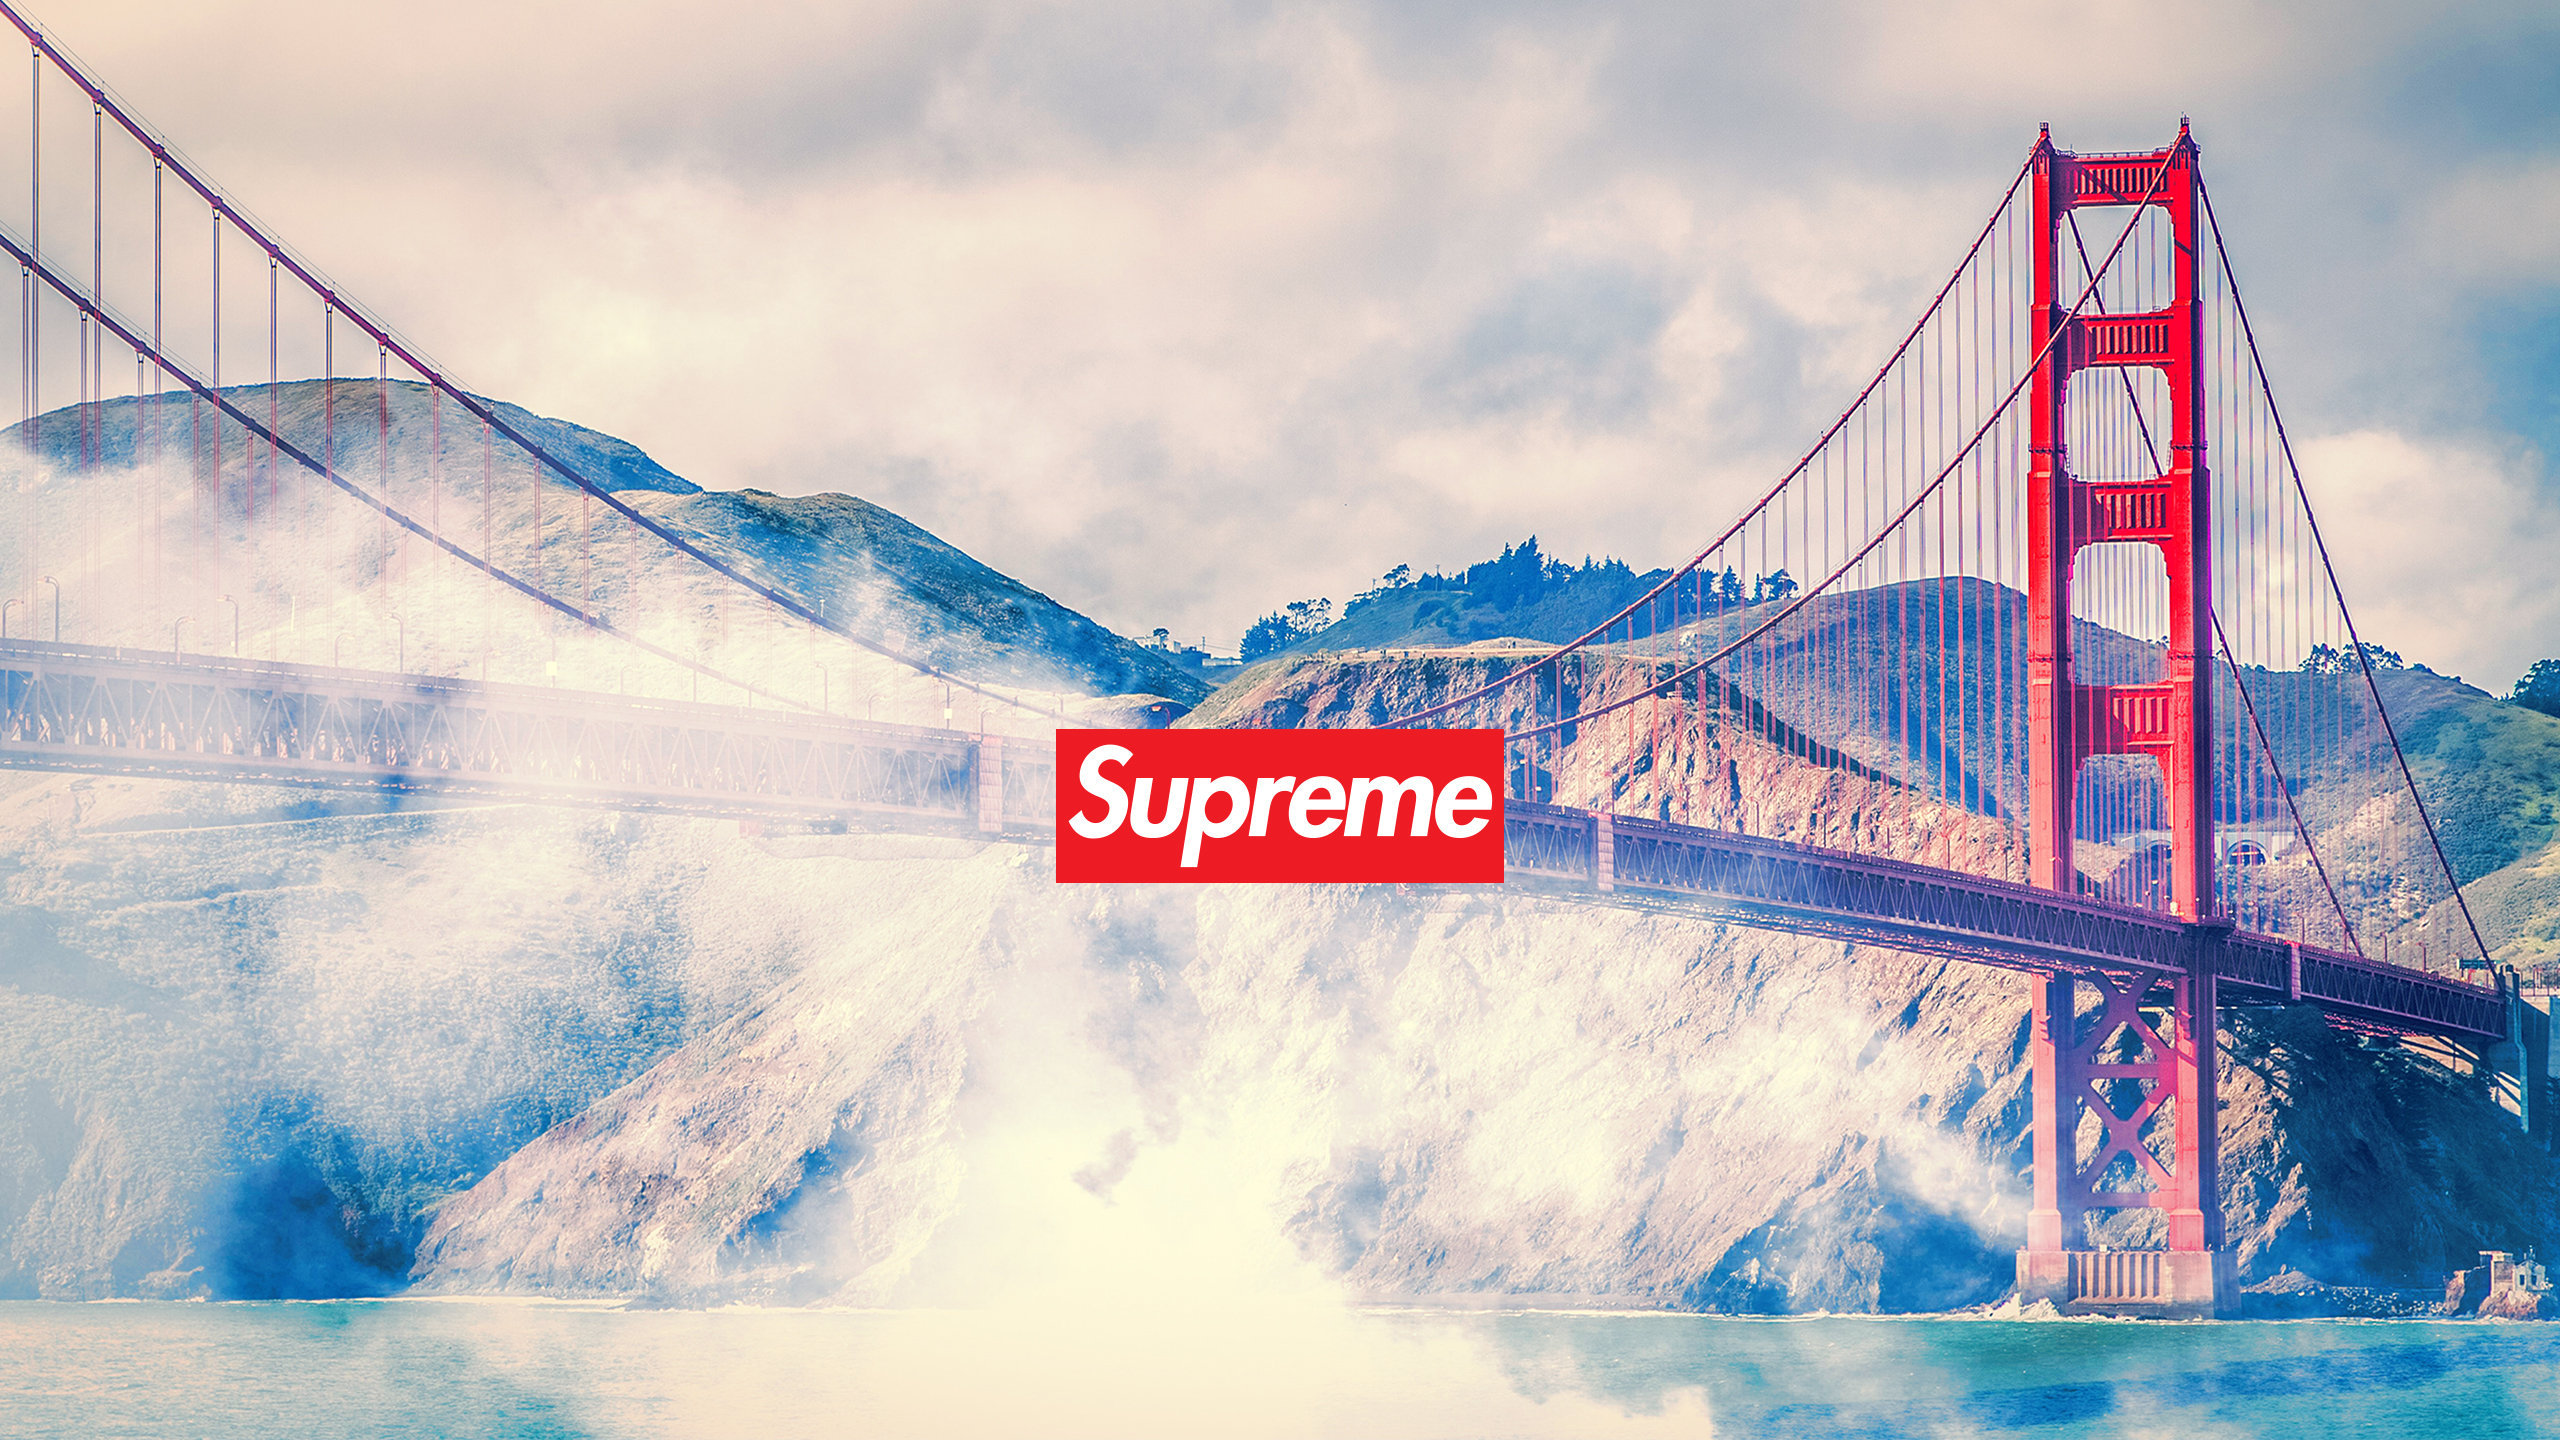 Supreme wallpaper 77 wallpapers hd wallpapers for Fond ecran supreme